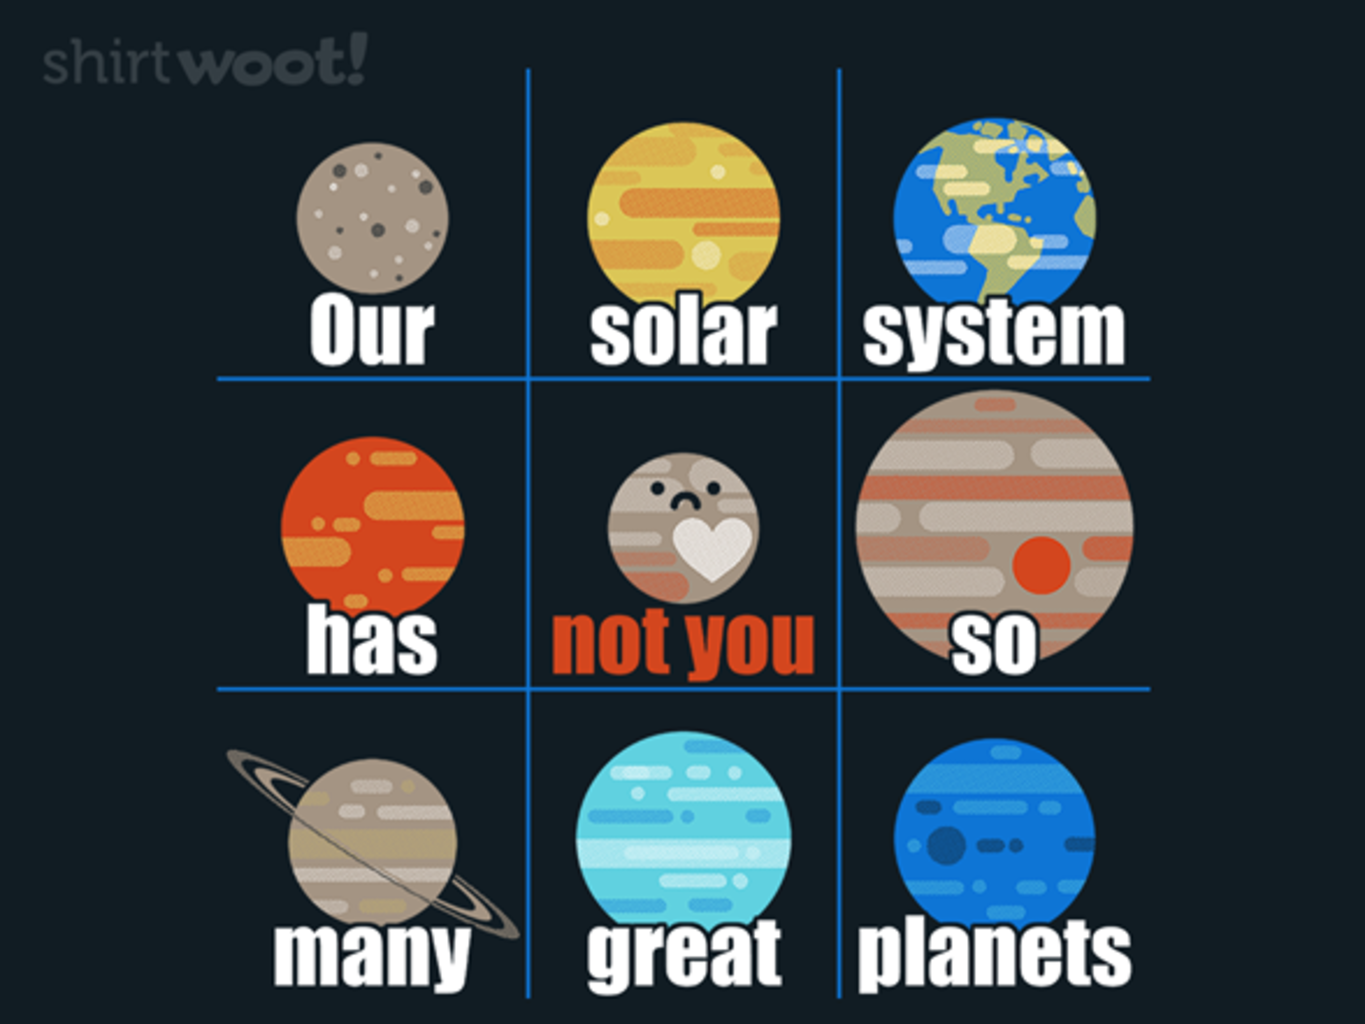 Woot!: Not You, Pluto